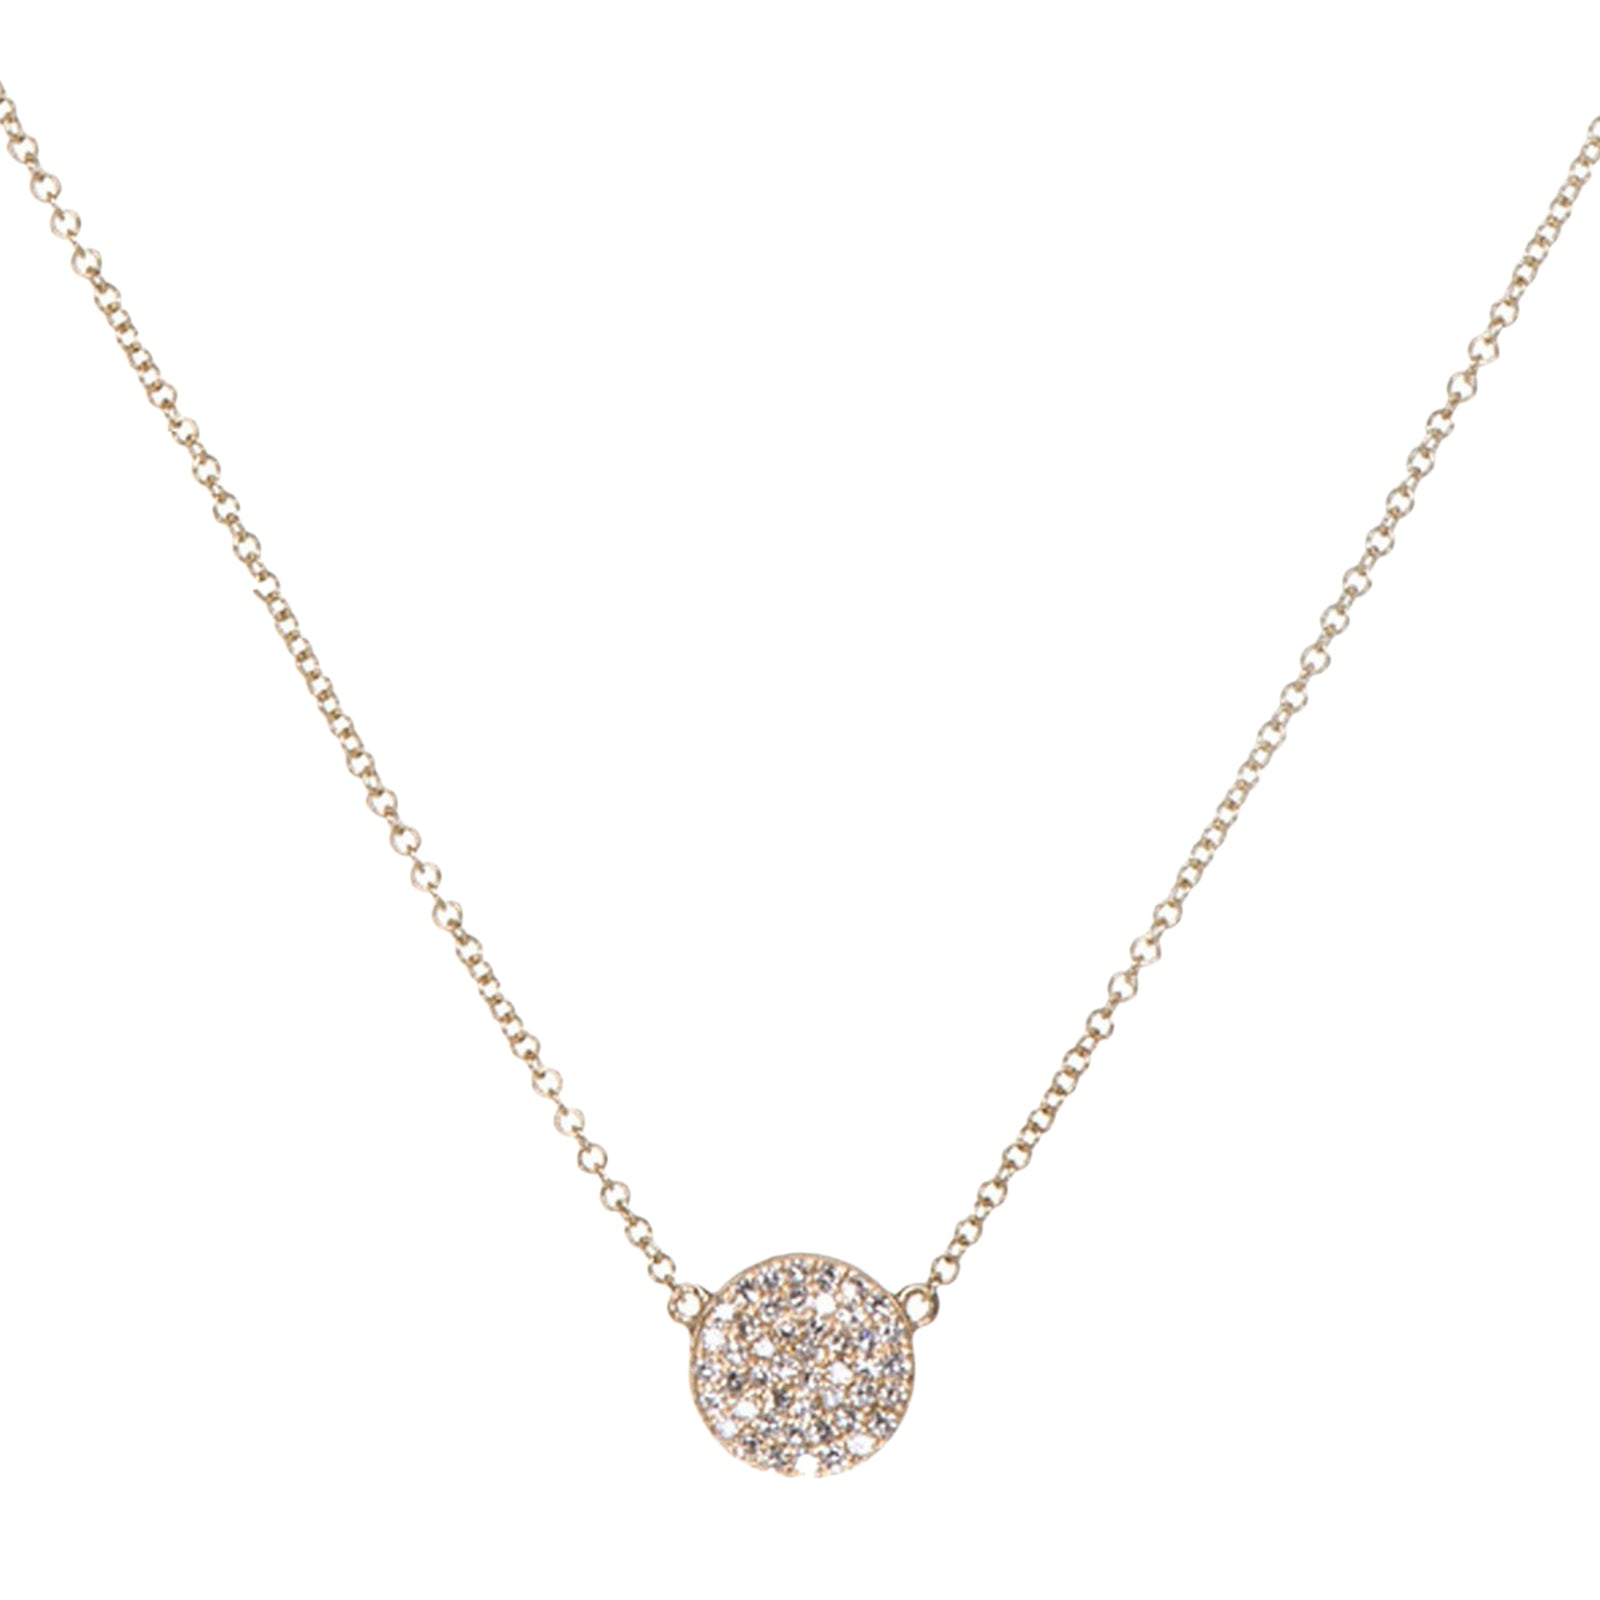 EF Collection Diamond Disk Necklace - Yellow Gold - Necklaces - Broken English Jewelry